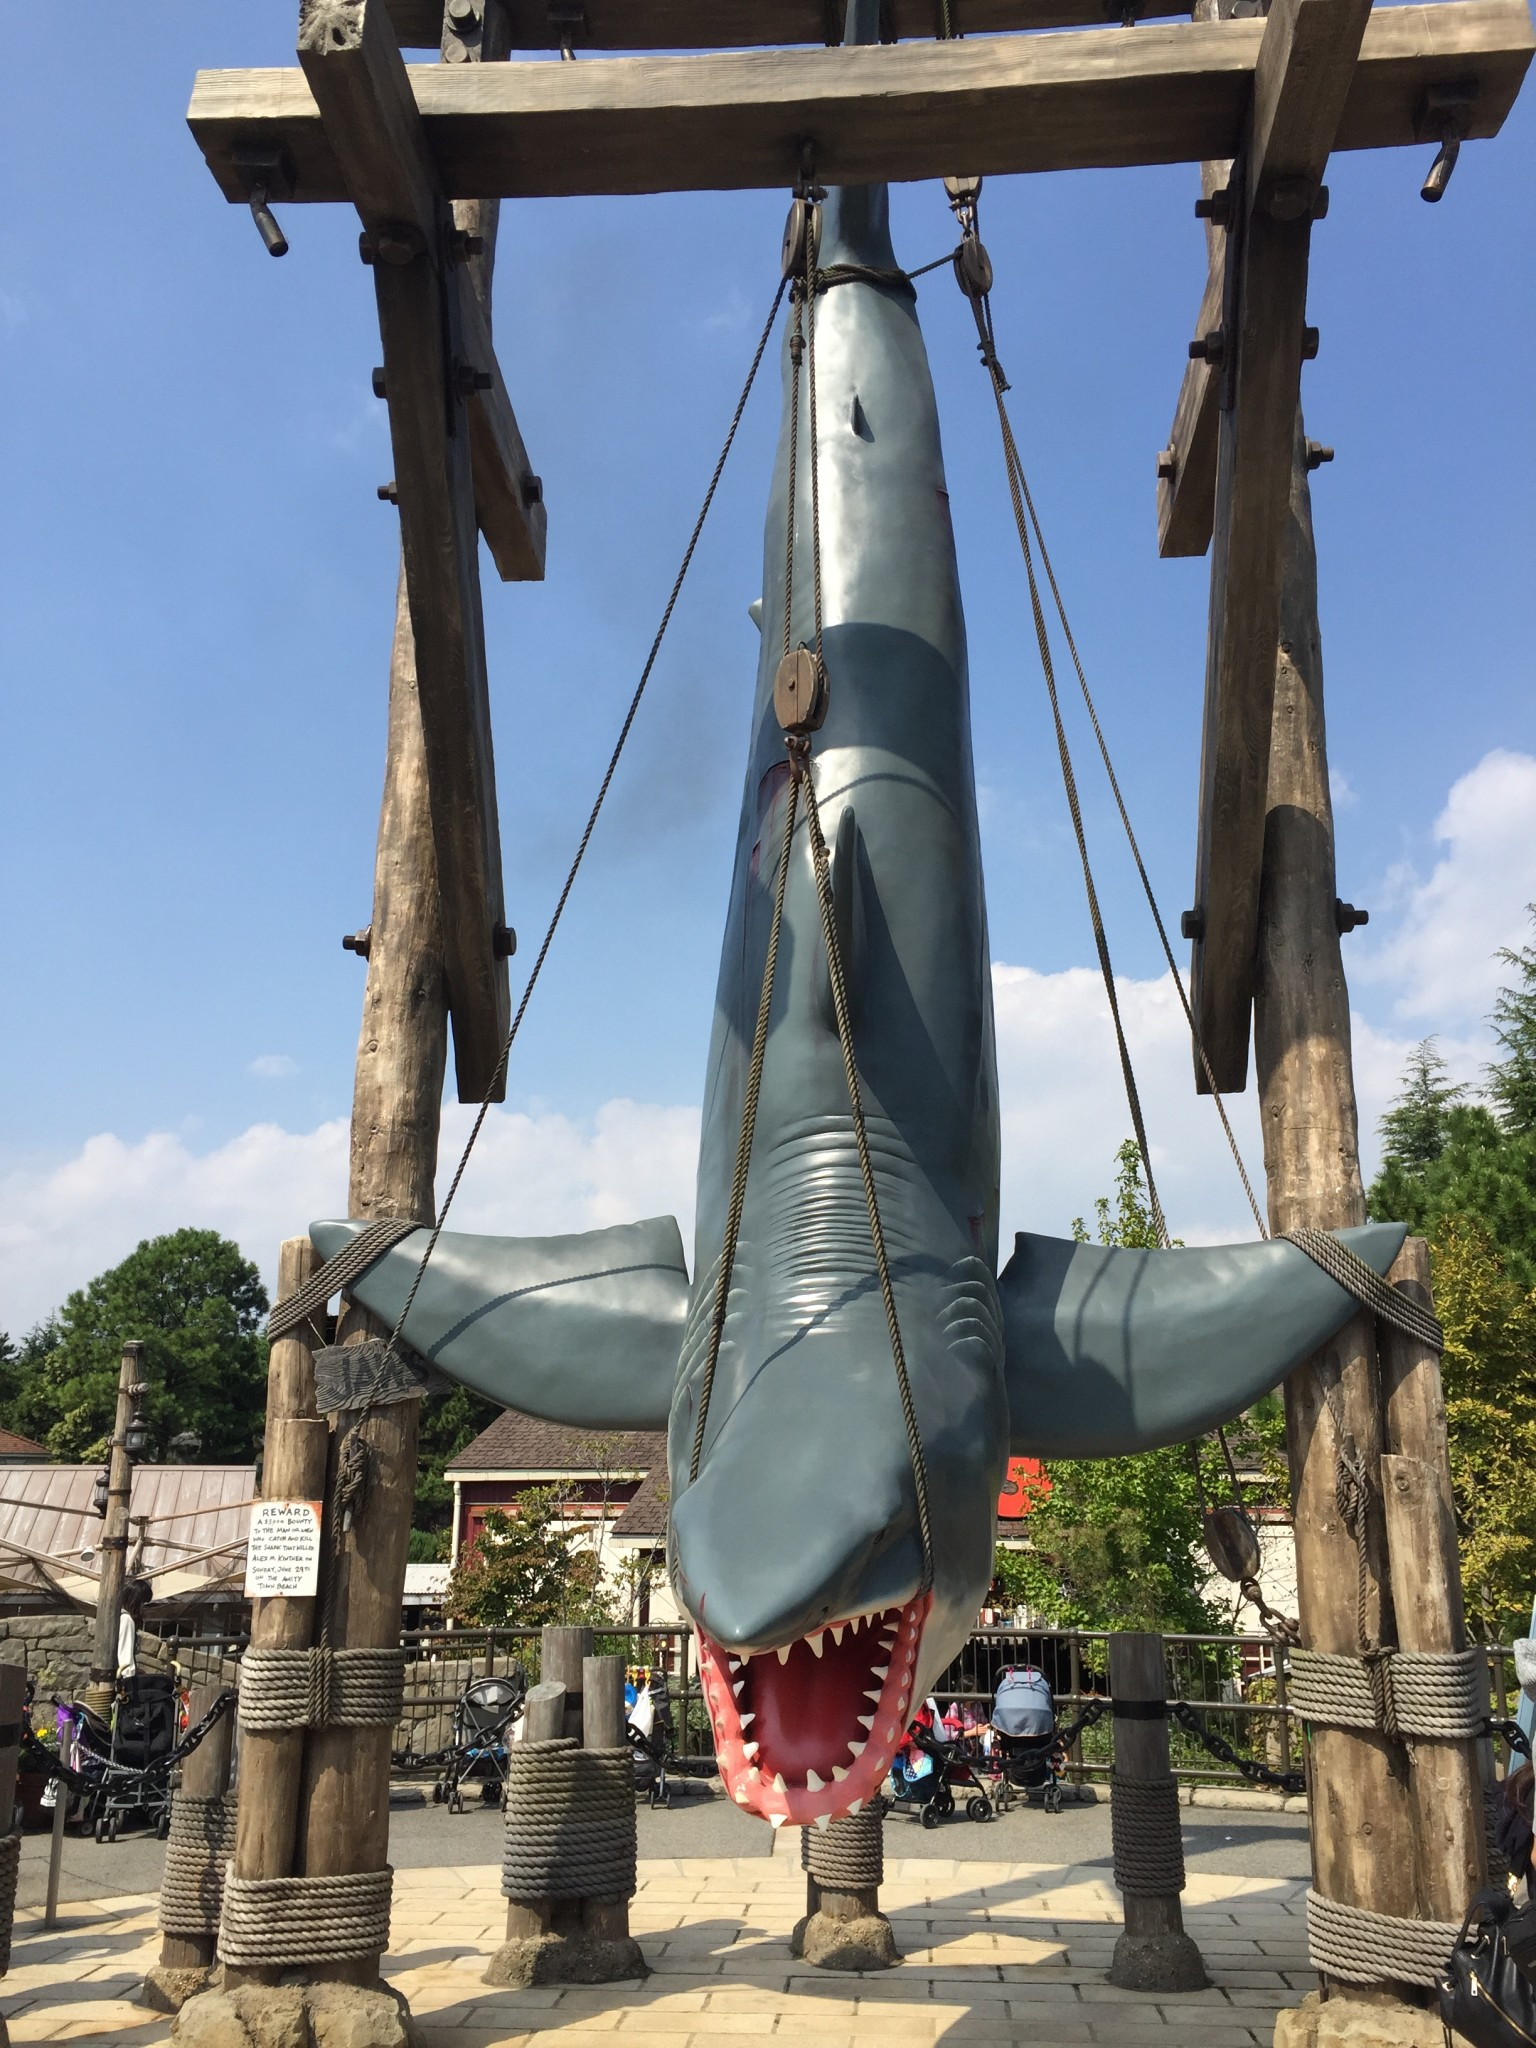 Top 5 Best Rides And Attractions At Universal Studios